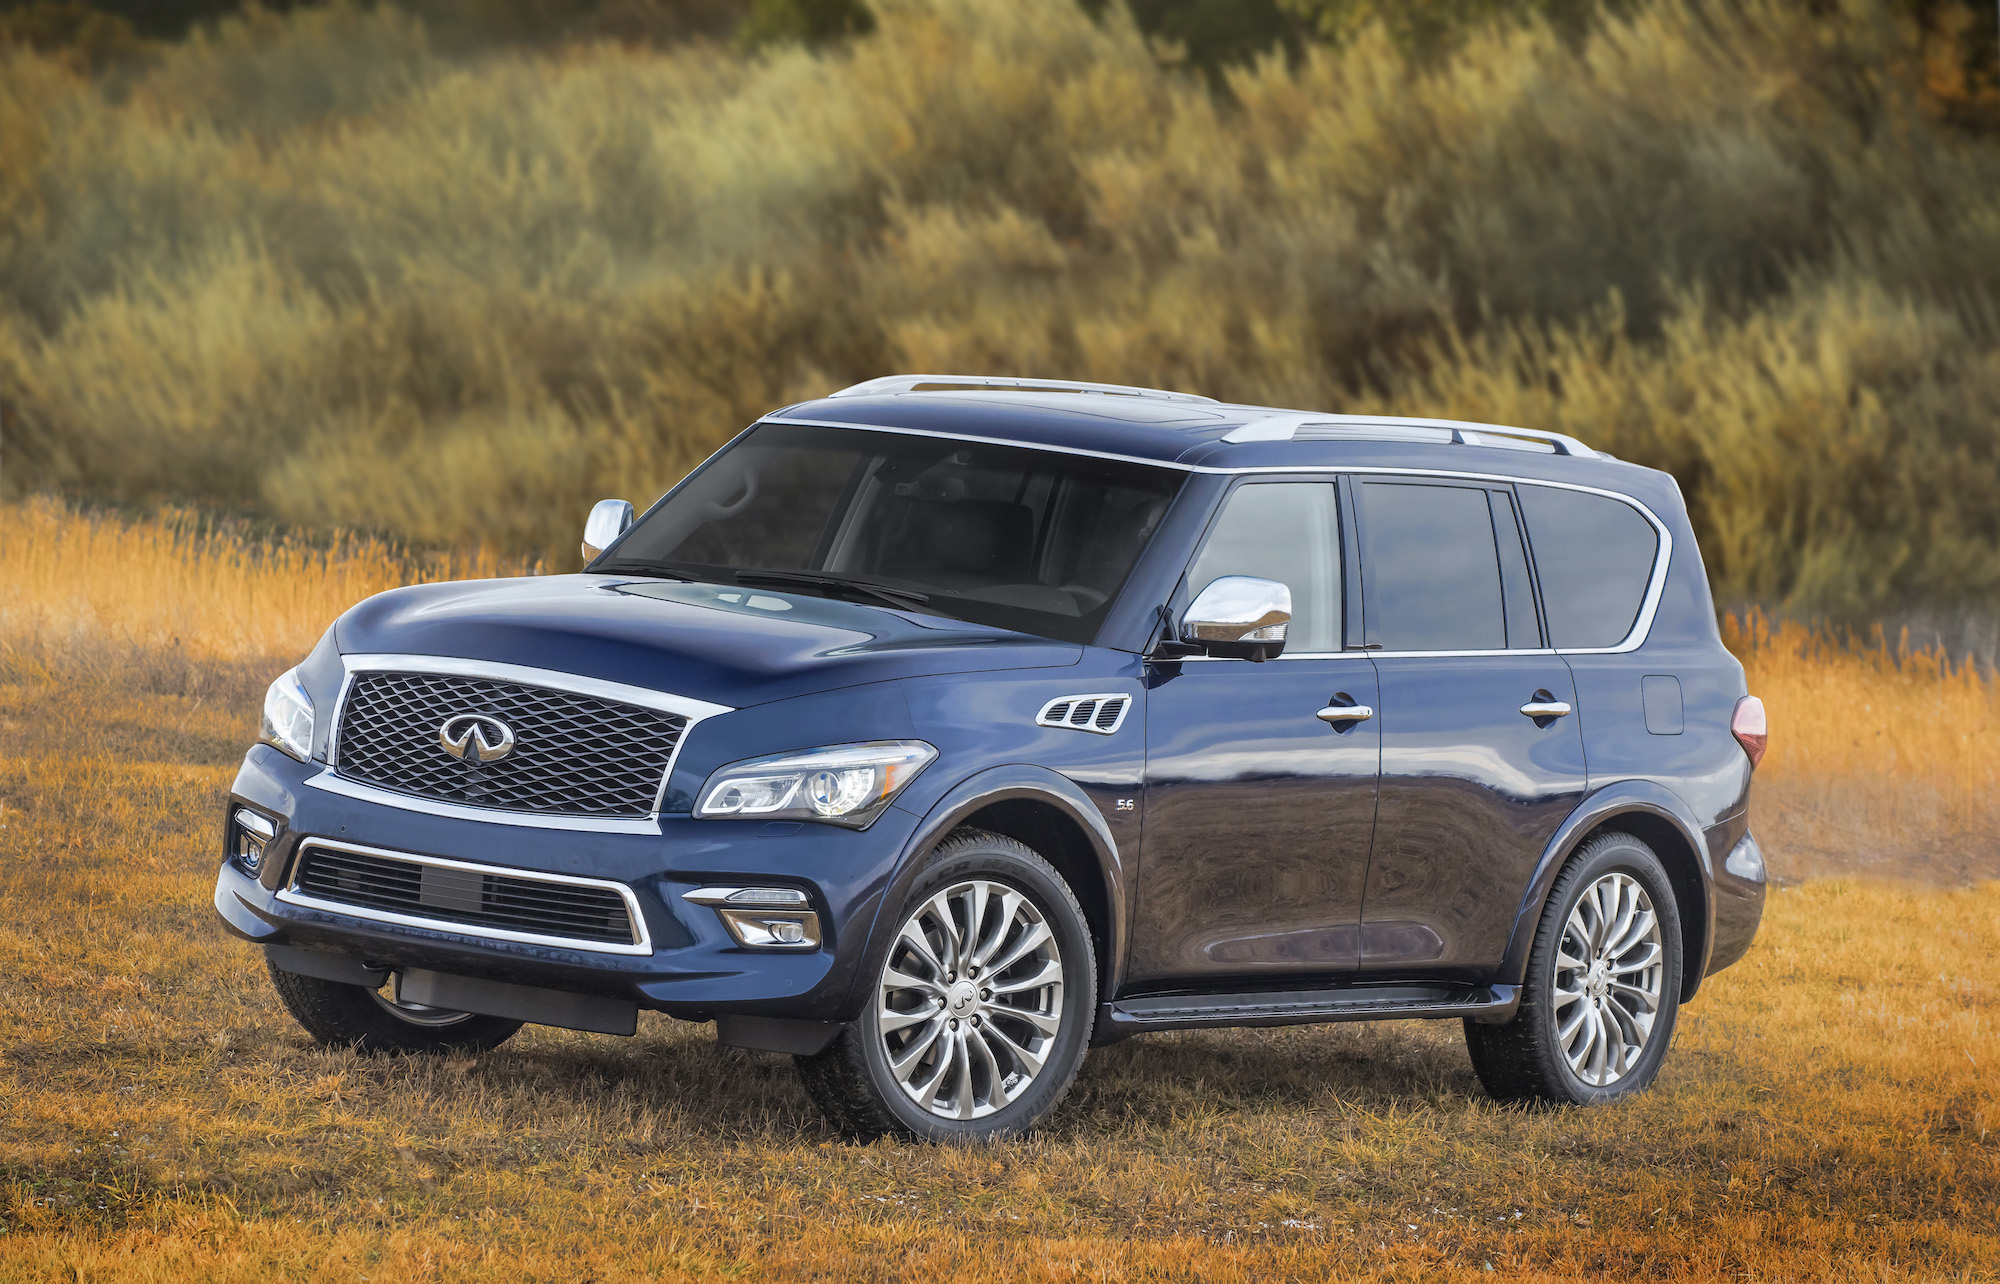 2016 infiniti qx80 safety review and crash test ratings the car connection. Black Bedroom Furniture Sets. Home Design Ideas